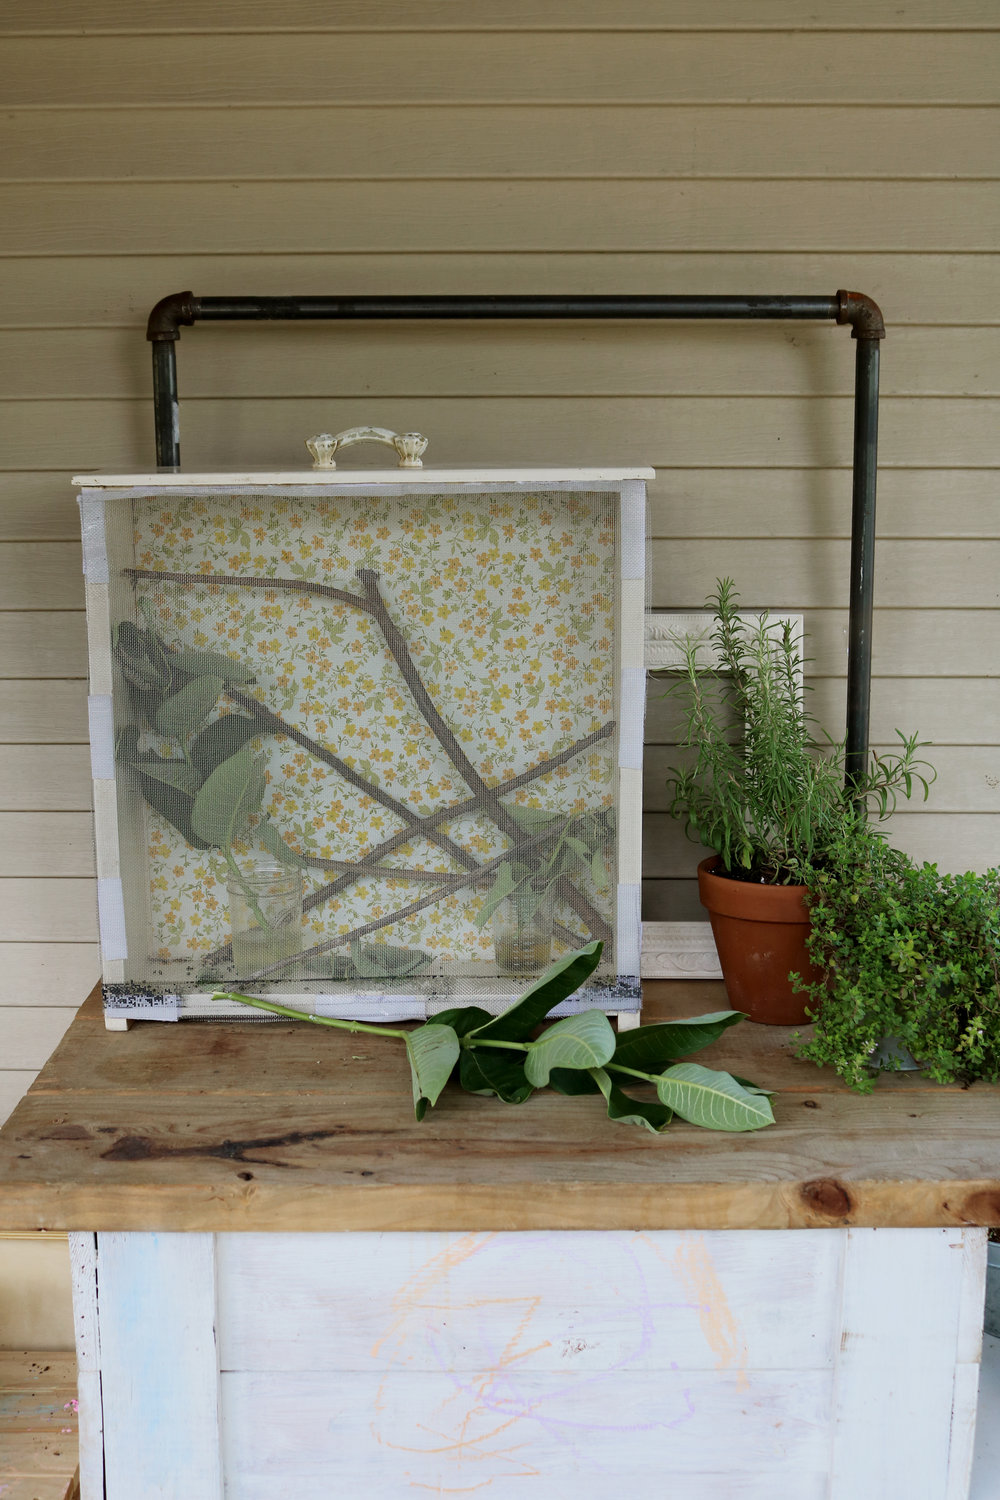 xDIY Monarch Habitat and Caring for Caterpillars - Under A Tin Roof Blog